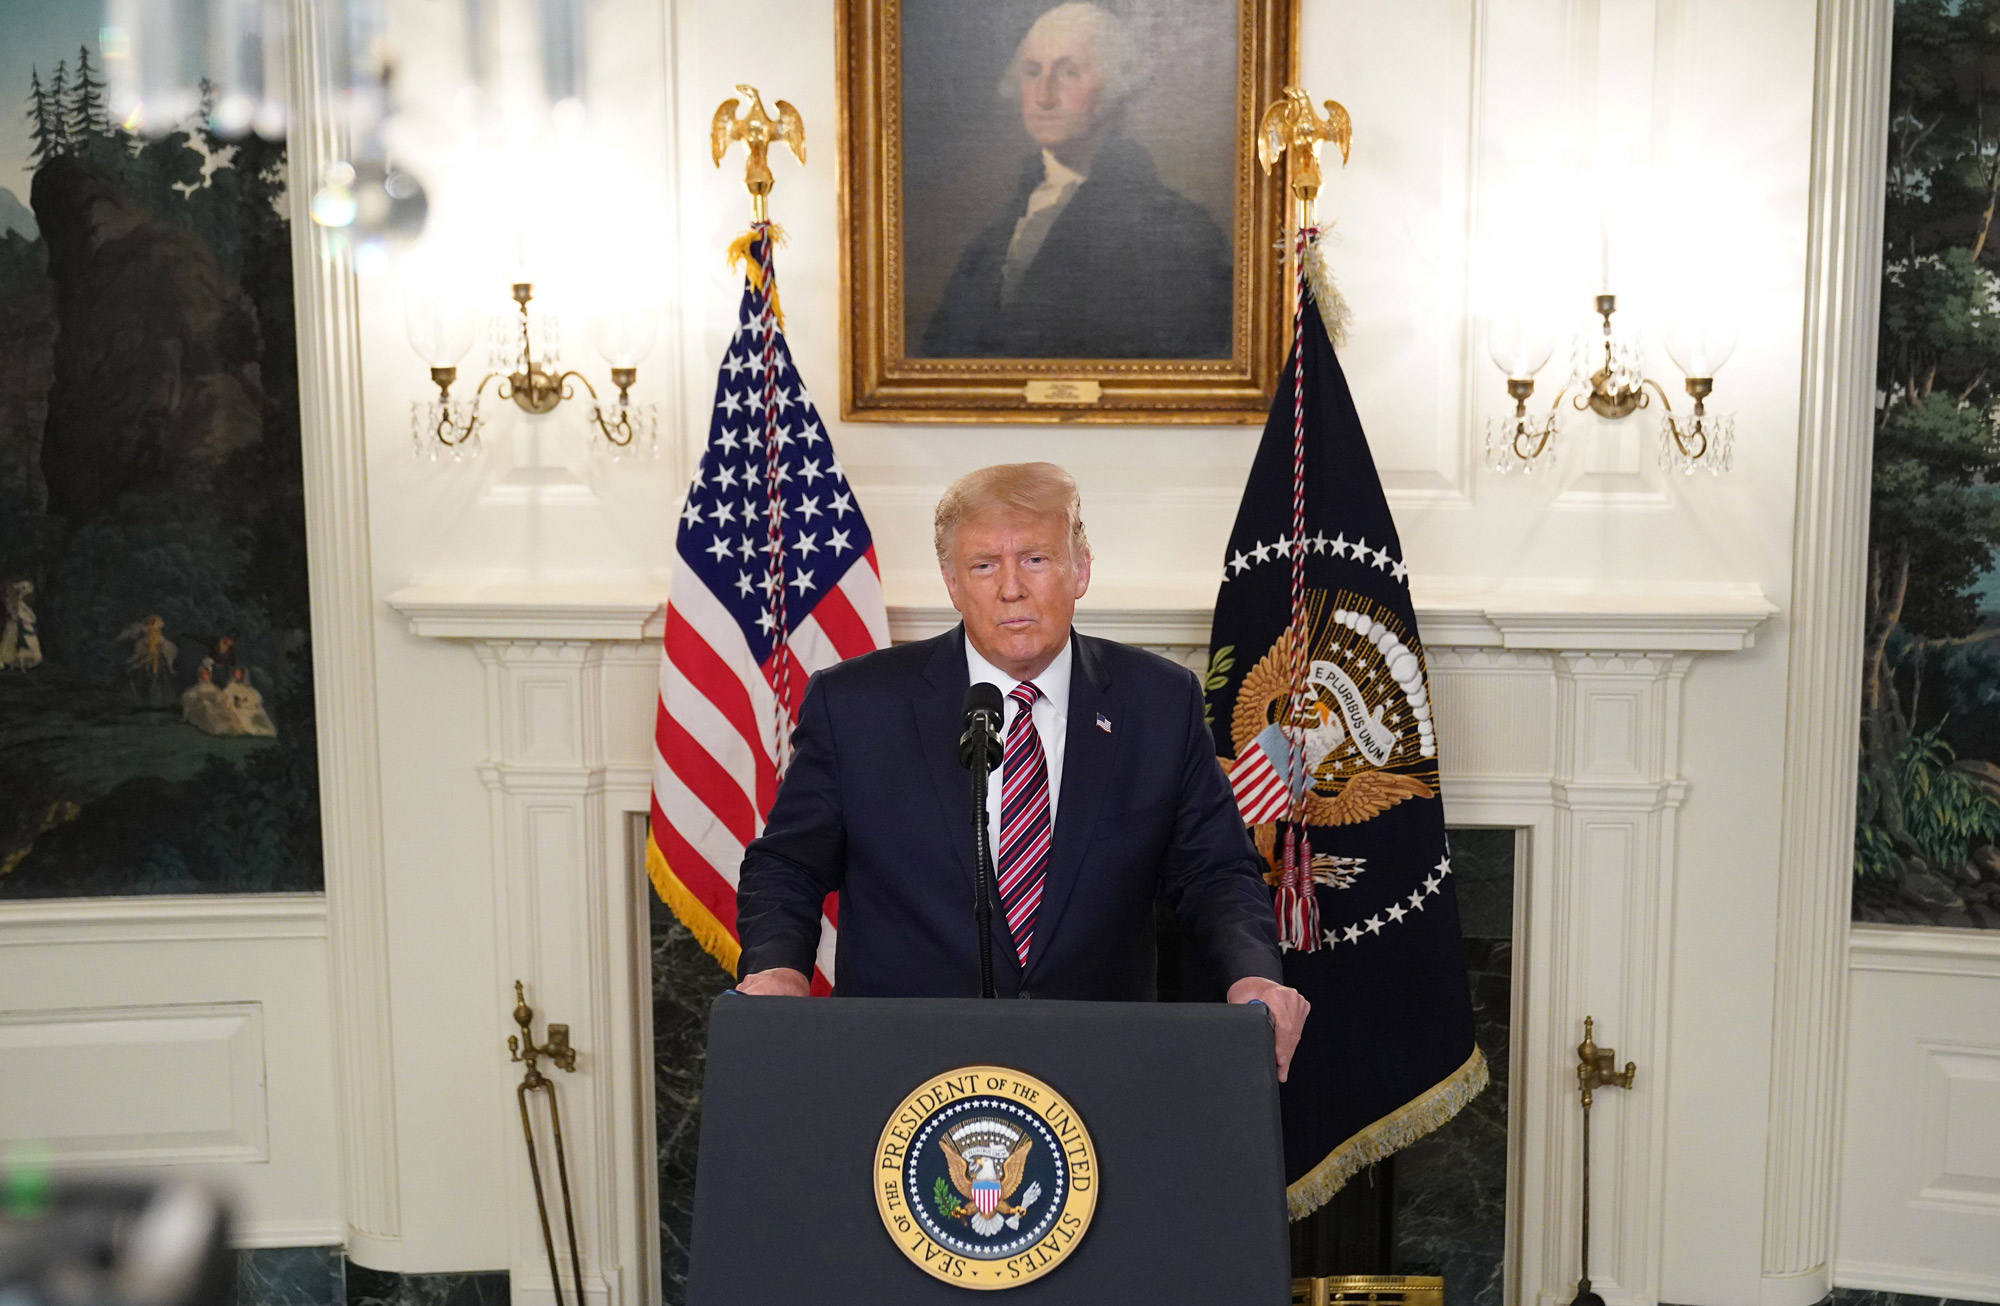 US President Donald Trump speaks in the Diplomatic Reception Room of the White House in Washington, DC, on September 9.